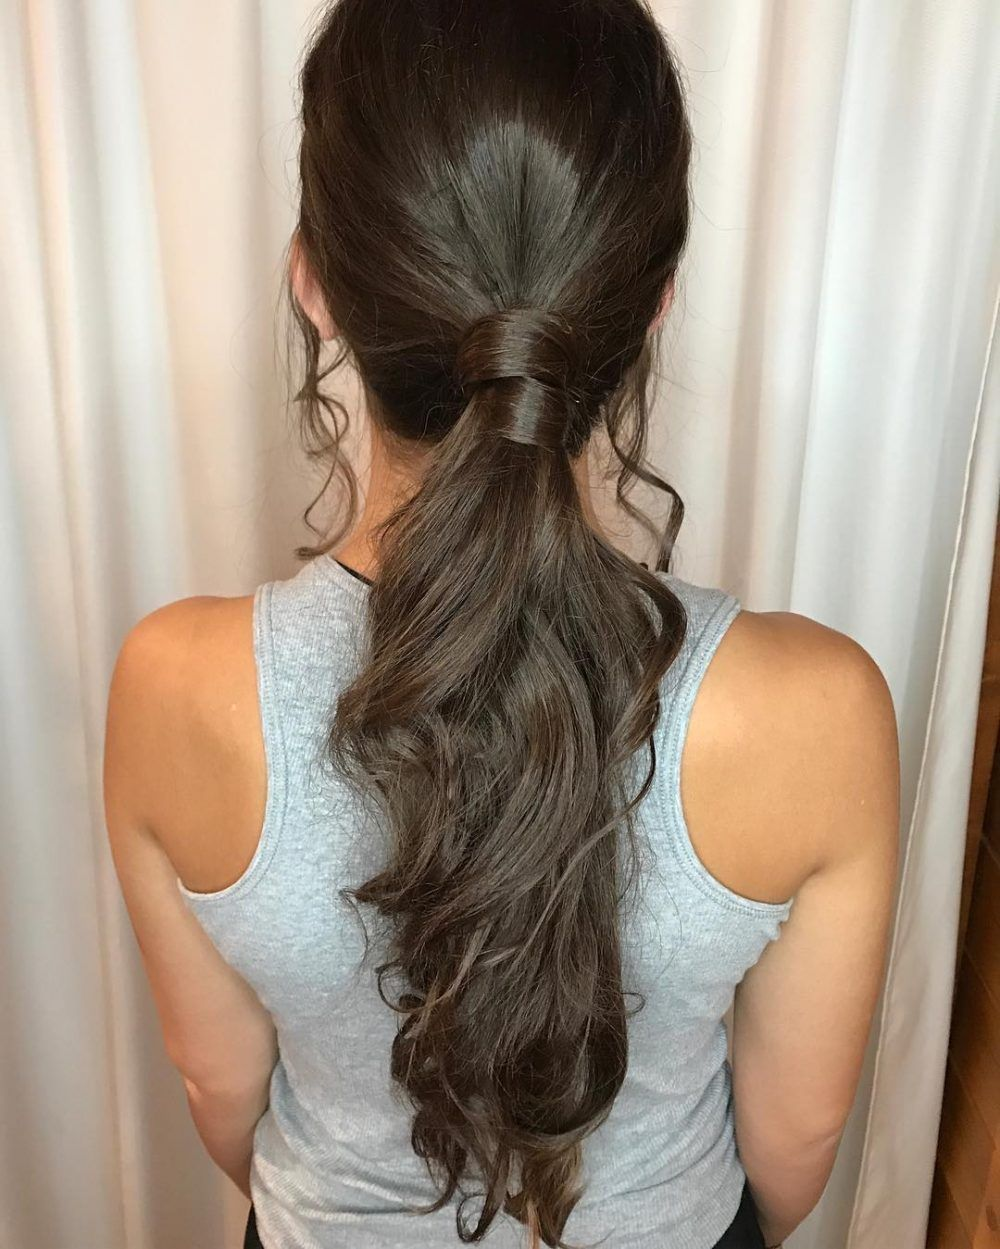 18 Greatest Long Hairstyles For Women With Long Hair In 2021 Low Ponytail Hairstyles Cute Hairstyles Hair Styles